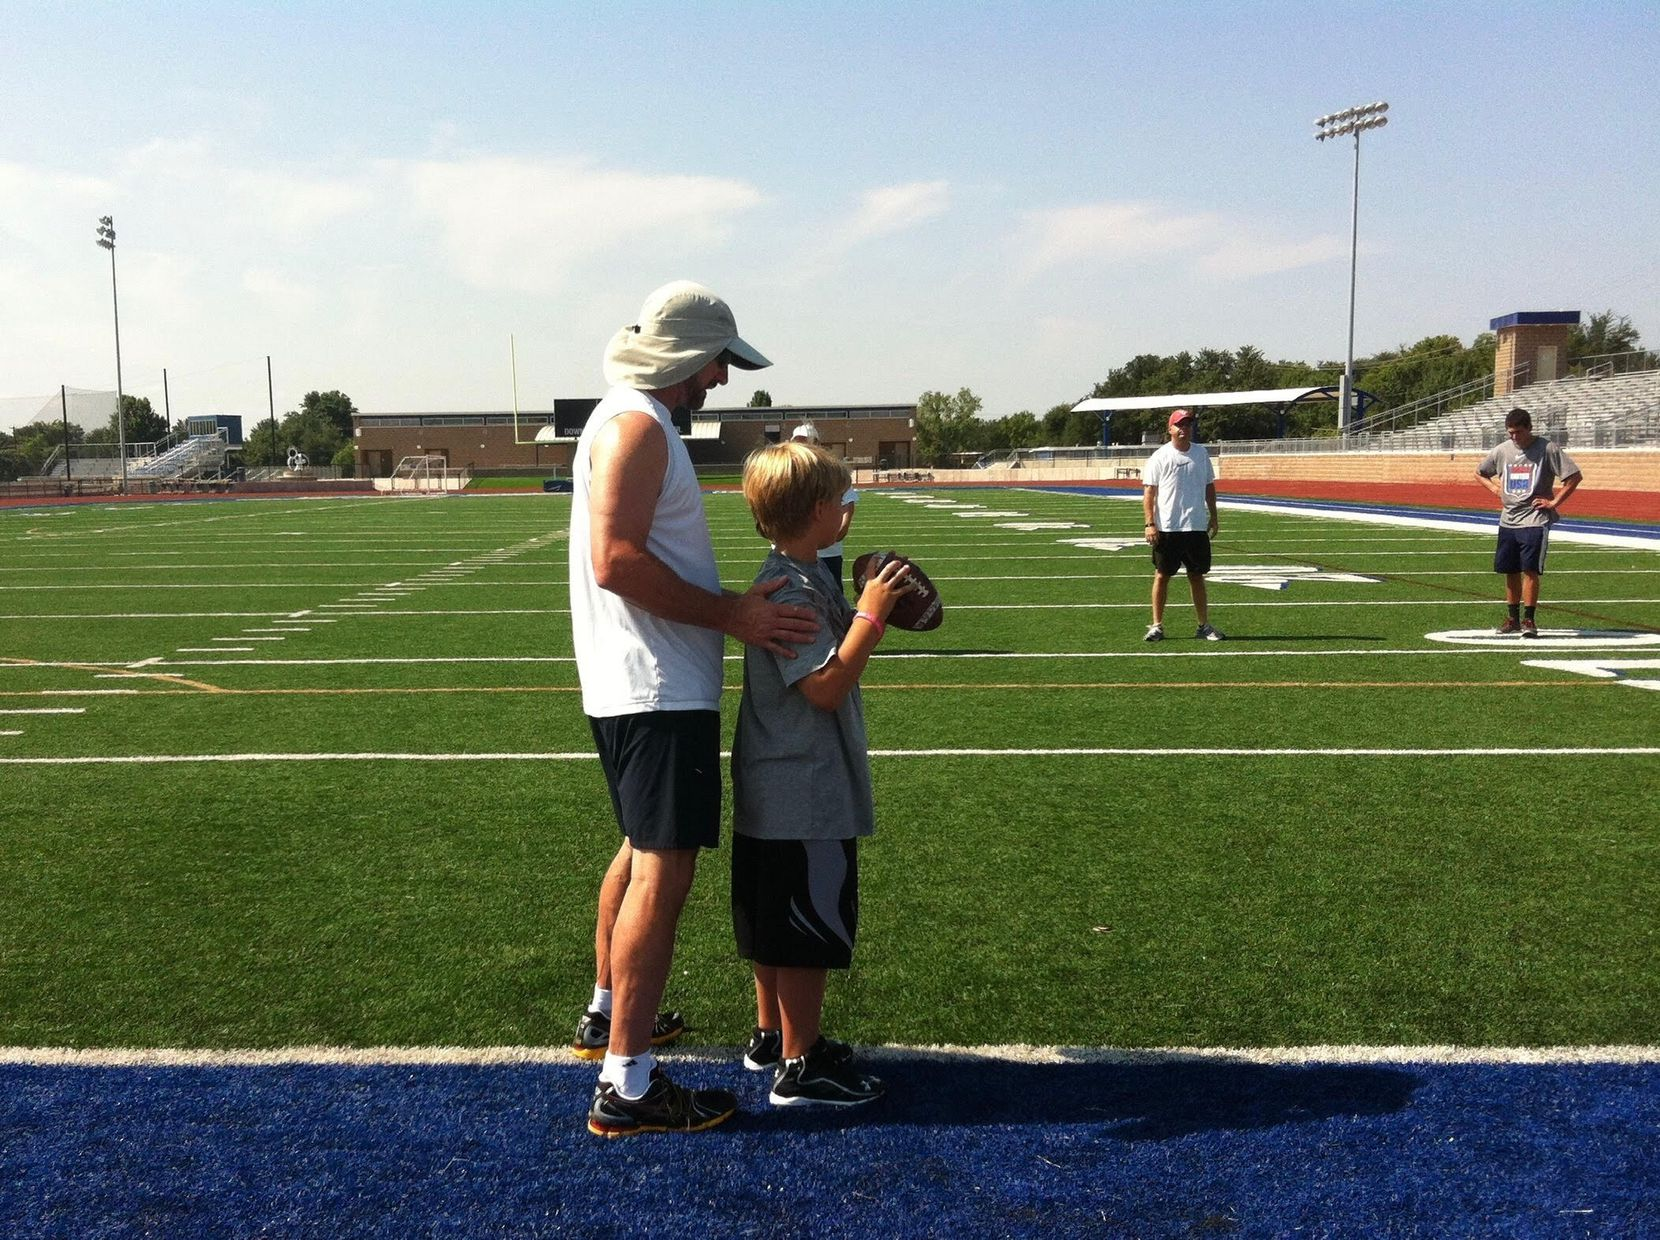 Former NFL quarterback and Dallas Cowboys radio color analyst Babe Laufenberg coaches nine-year-old Brayden Schager. Schager, now a senior, is expected to be the starting quarterback at Highland Park this fall.